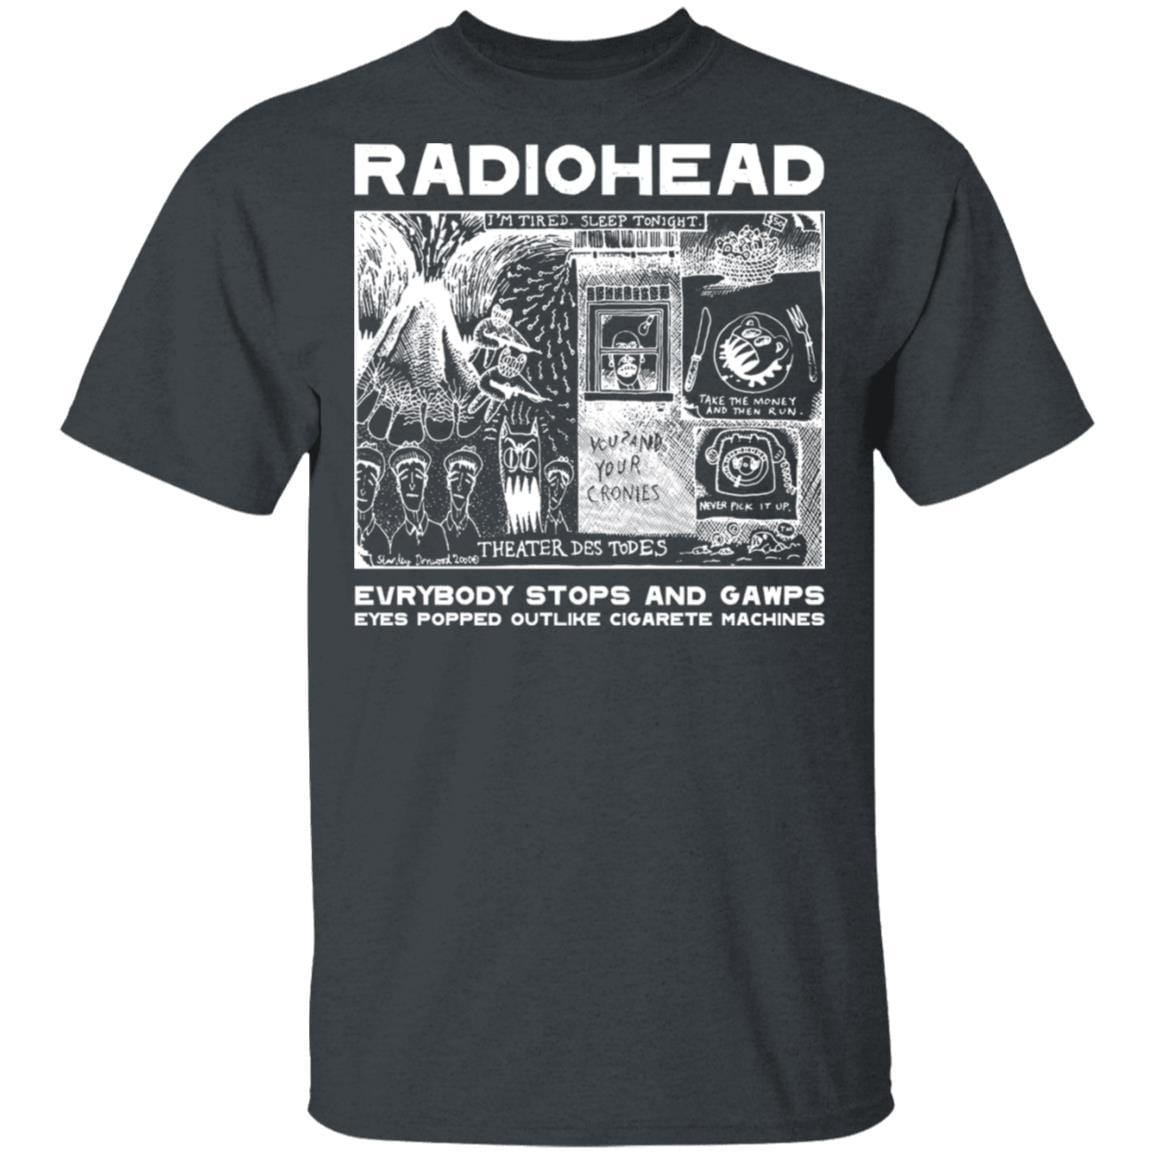 Radiohead Evrybody Stops And Gawps Eyes Popped Outlike Cigarete Machines T-Shirts, Hoodies 1049-9957-87589175-48192 - Tee Ript